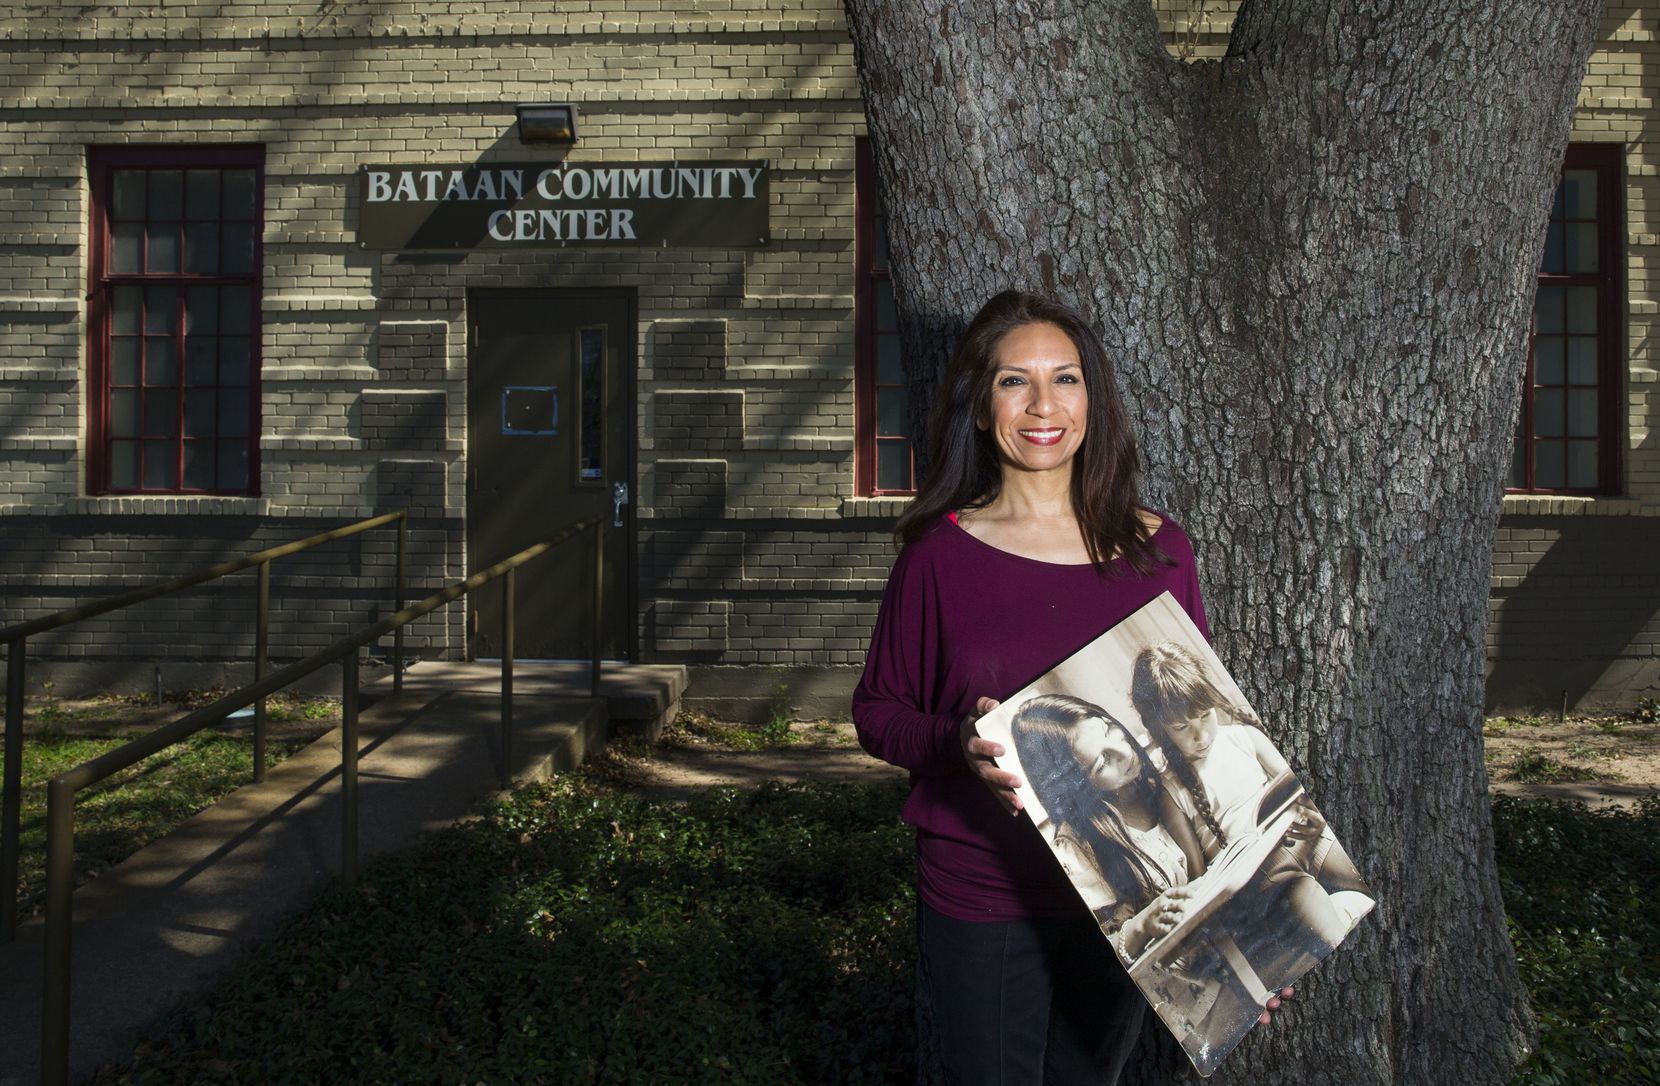 Maria Lozada Garcia, La Bajada Neighborhood Community Association president, poses for a portrait at the Bataan Community Center in Dallas on Monday, February 25, 2019. She holds a photograph of herself (right) when she was in preschool, learning to read at the community center.